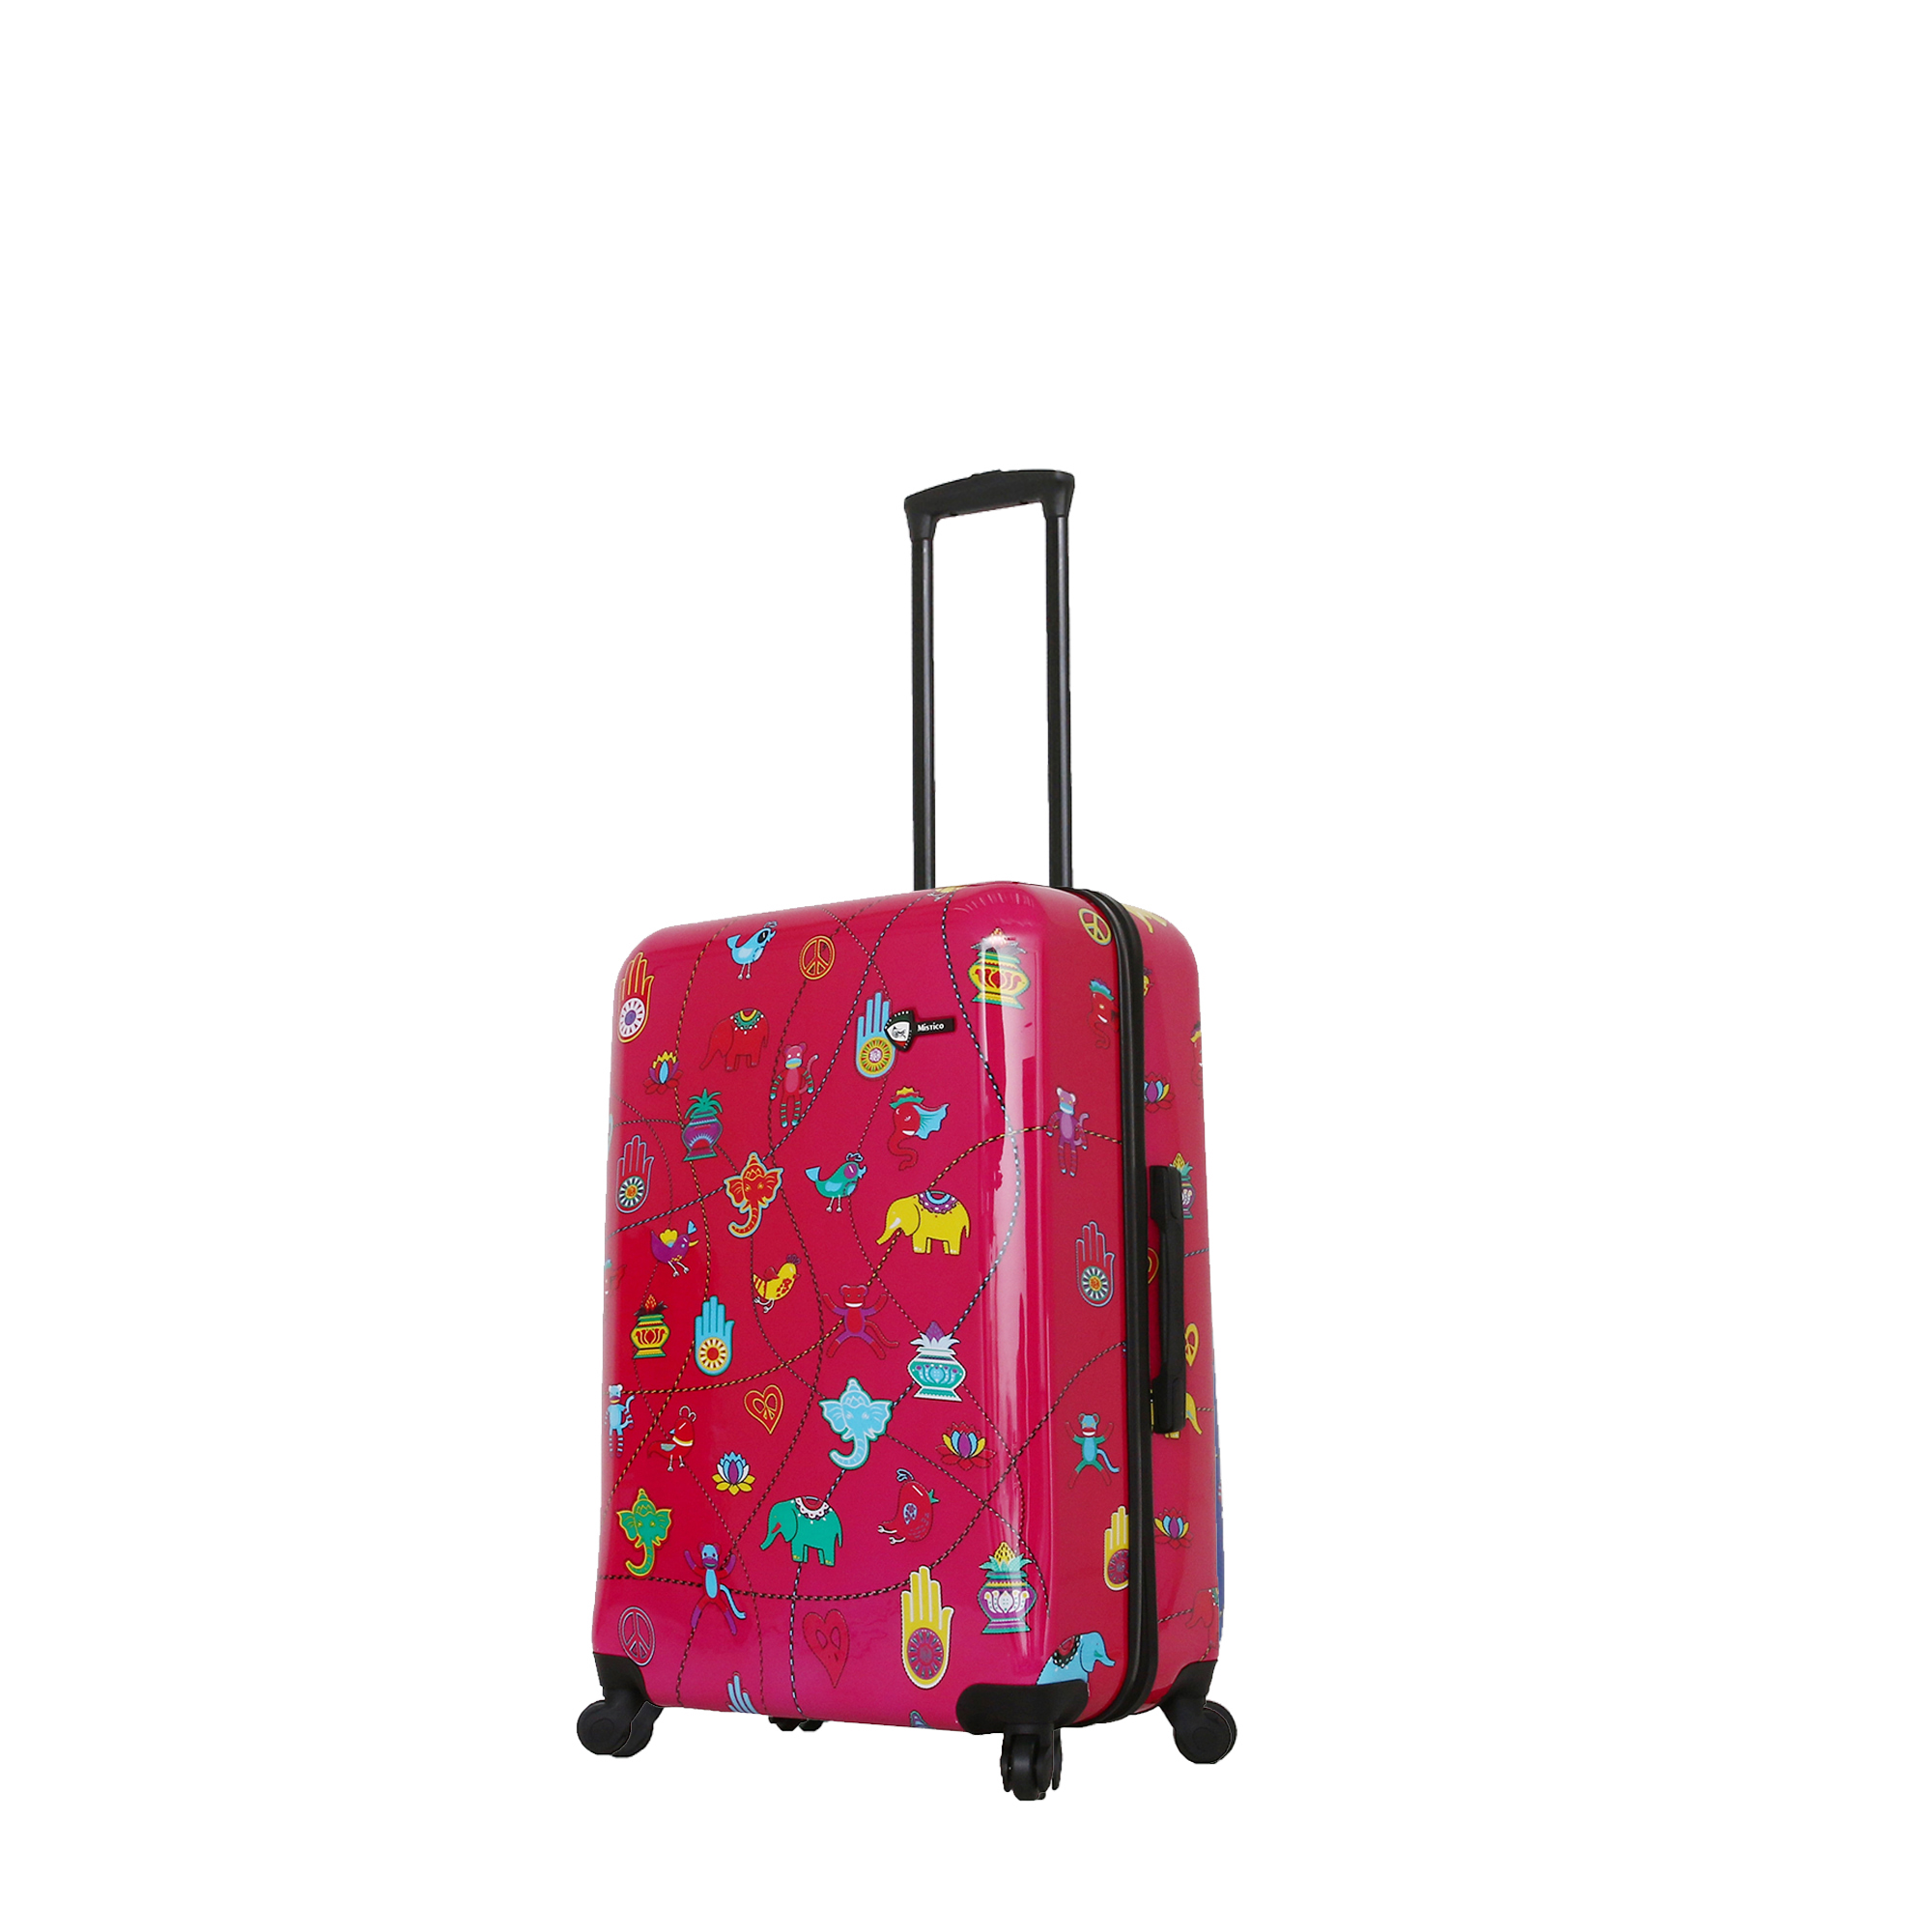 Mia Toro Italy-Mistico Hardside Spinner Luggage 3pc Set-Pink